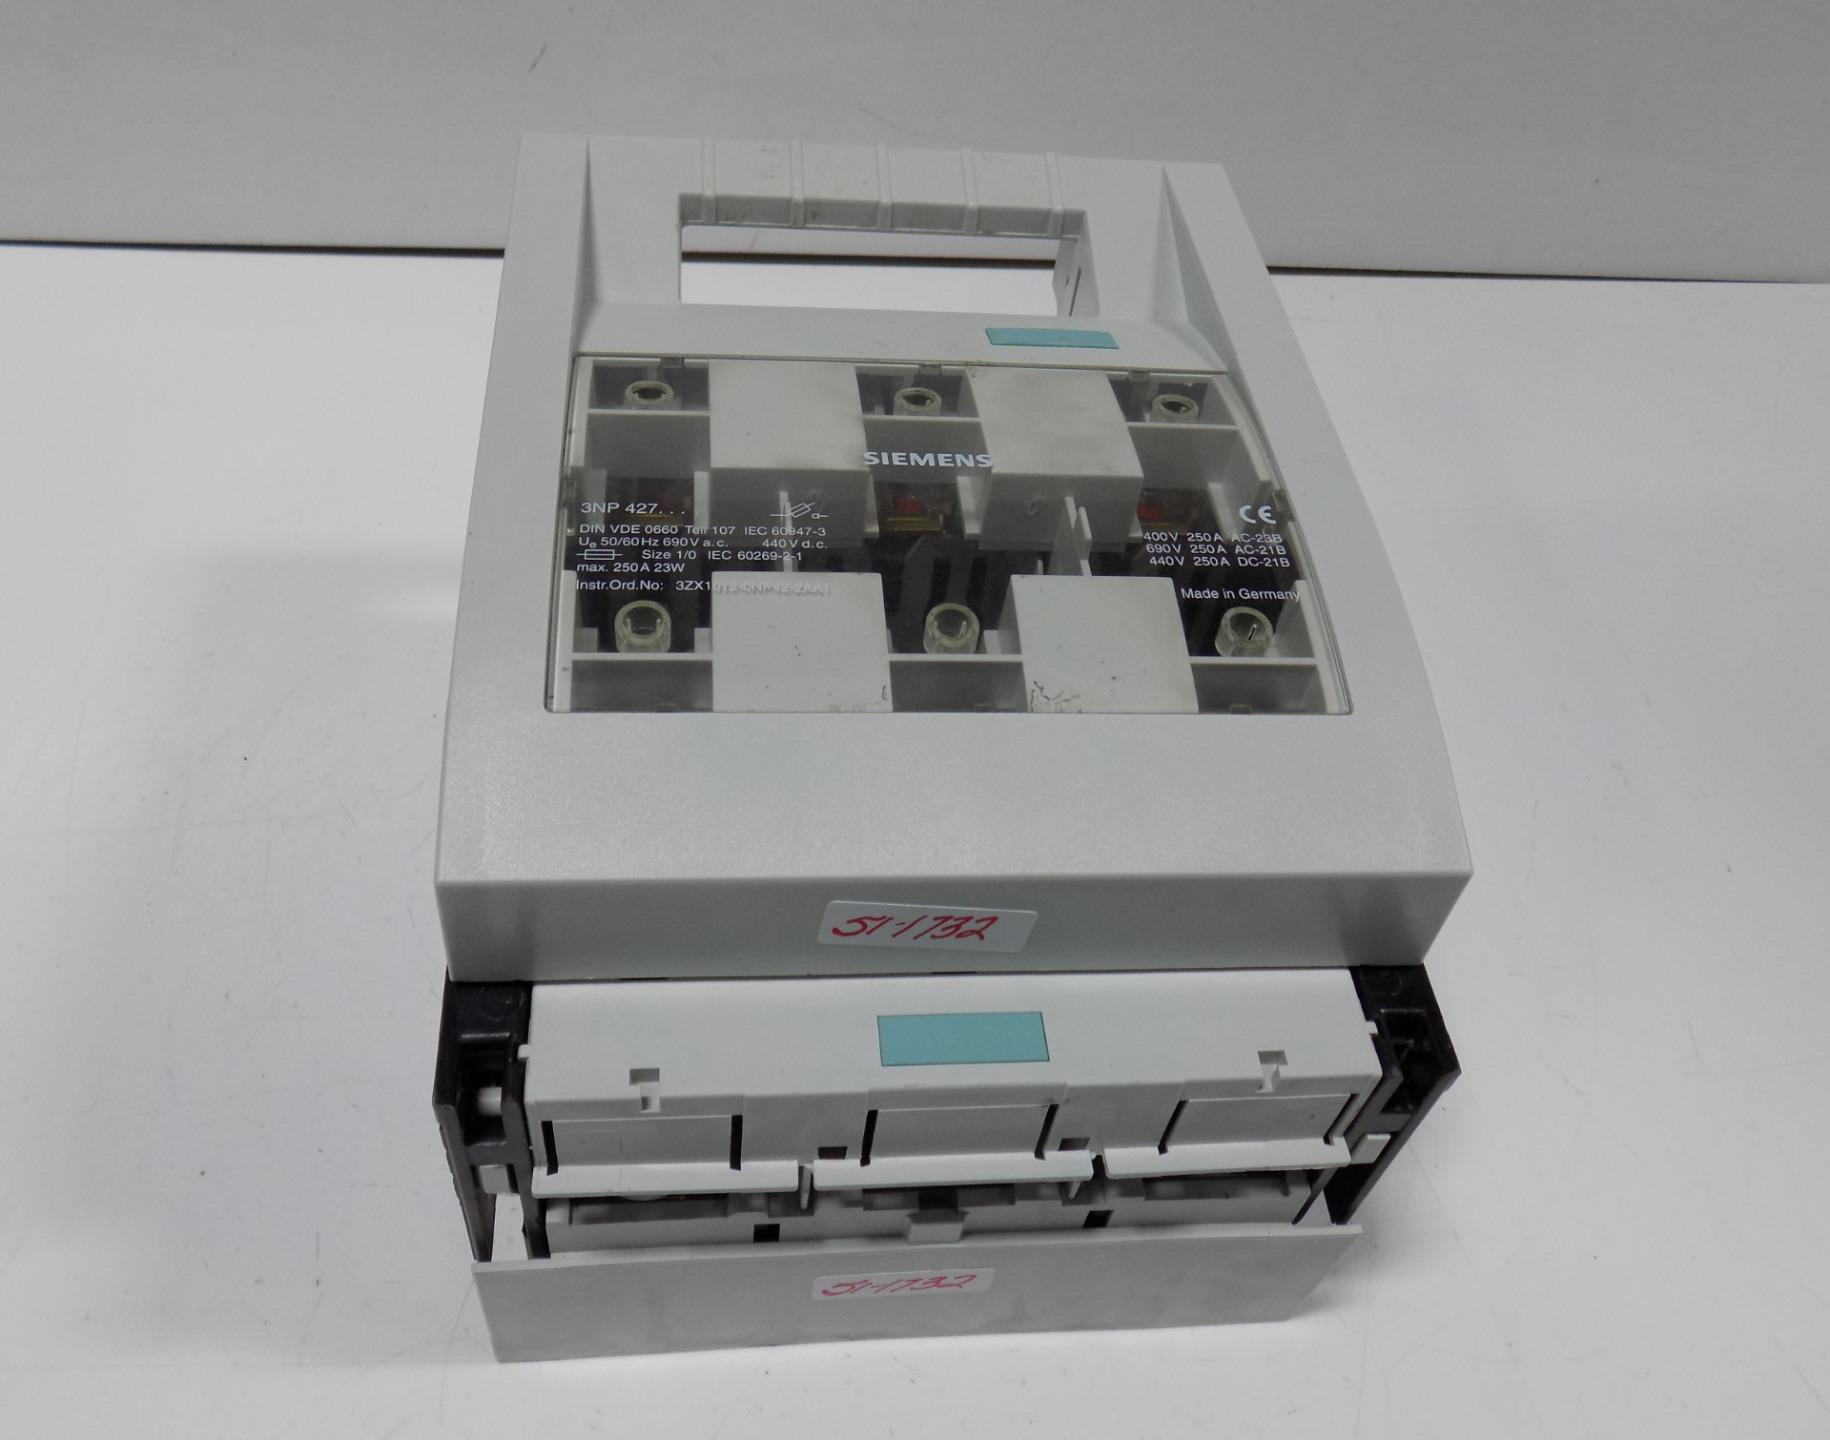 siemens 250 amp fuse switch disconnect 3np 427 ebay rh ebay com Disconnect Switch Box Air Conditioner Disconnect Box